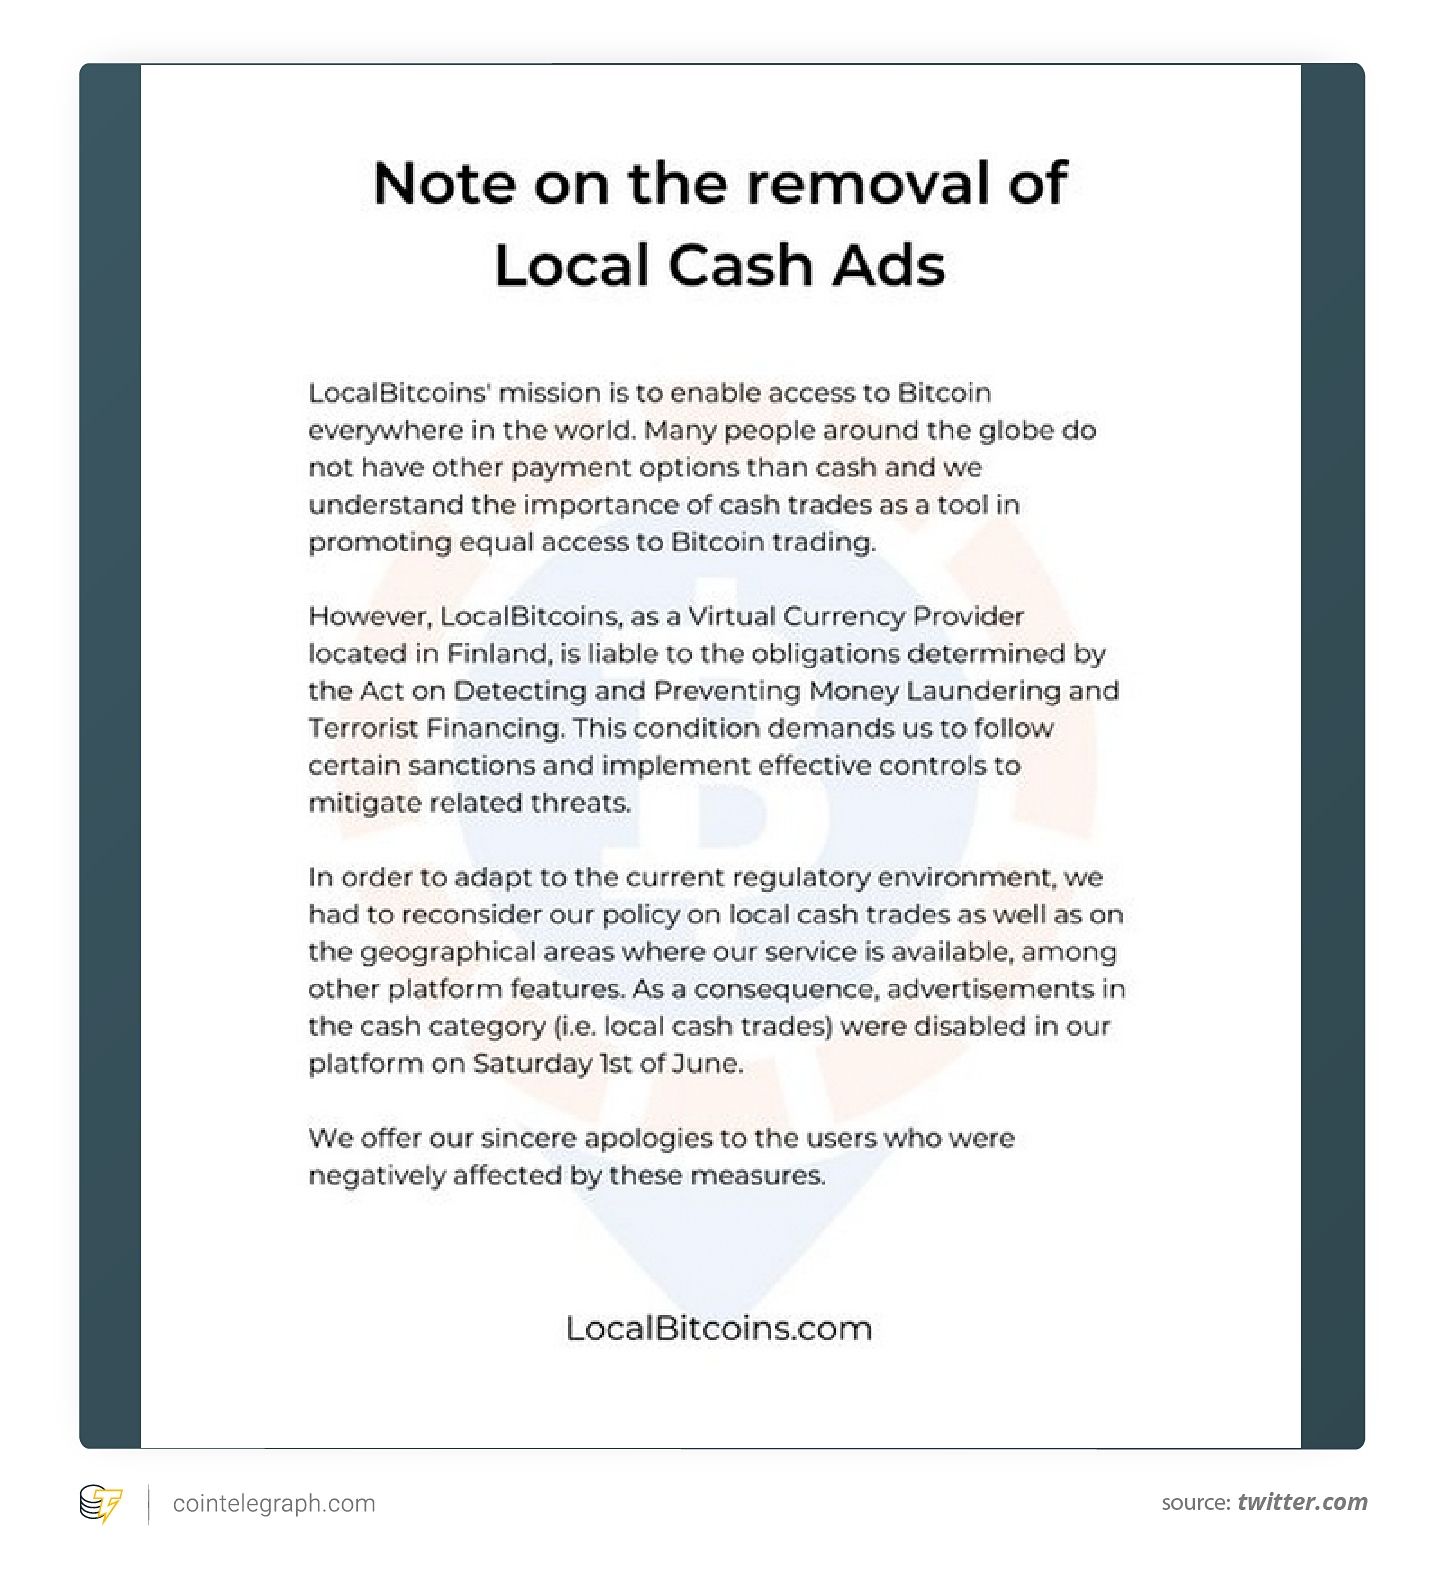 Note on the removal of Local Cash Ads